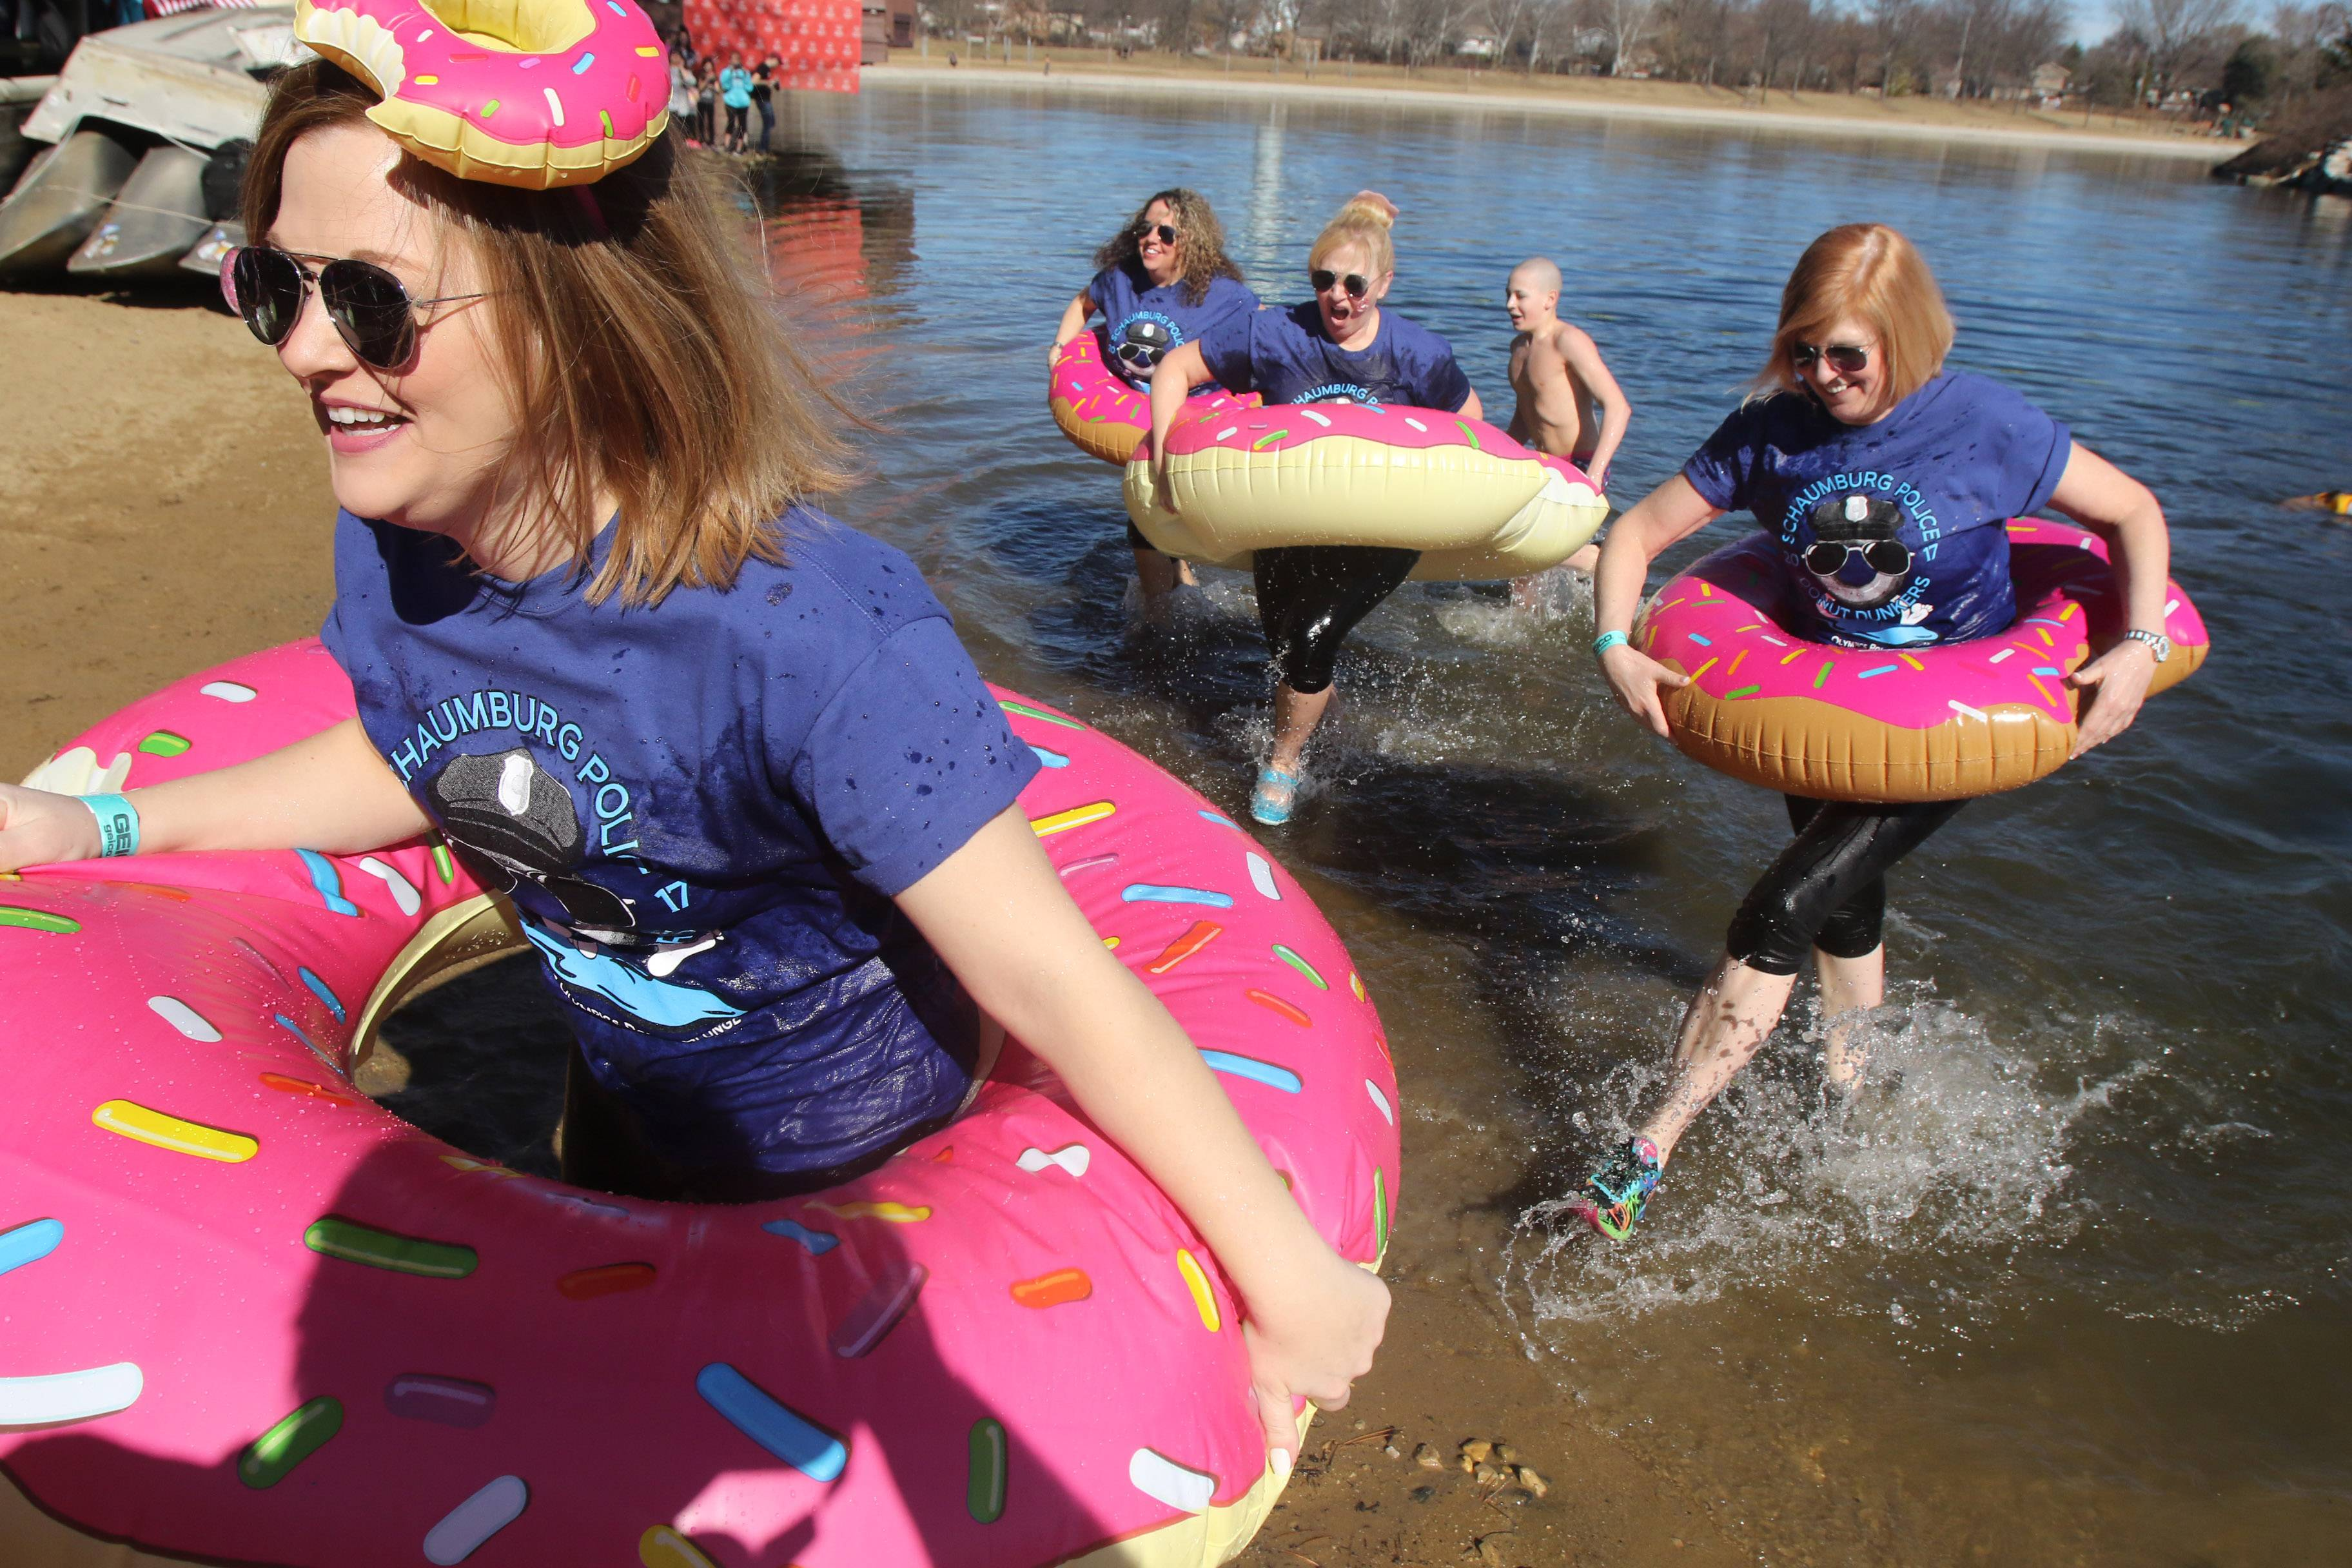 Members of the Schaumburg Police Donut Dunkers run out of the water after participating in the Palatine Polar Plunge on Sunday at Twin Lakes Recreation Area on a spring like afternoon. More than 350 plungers participated in the Law Enforcement Torch Run event that supports Special Olympics.